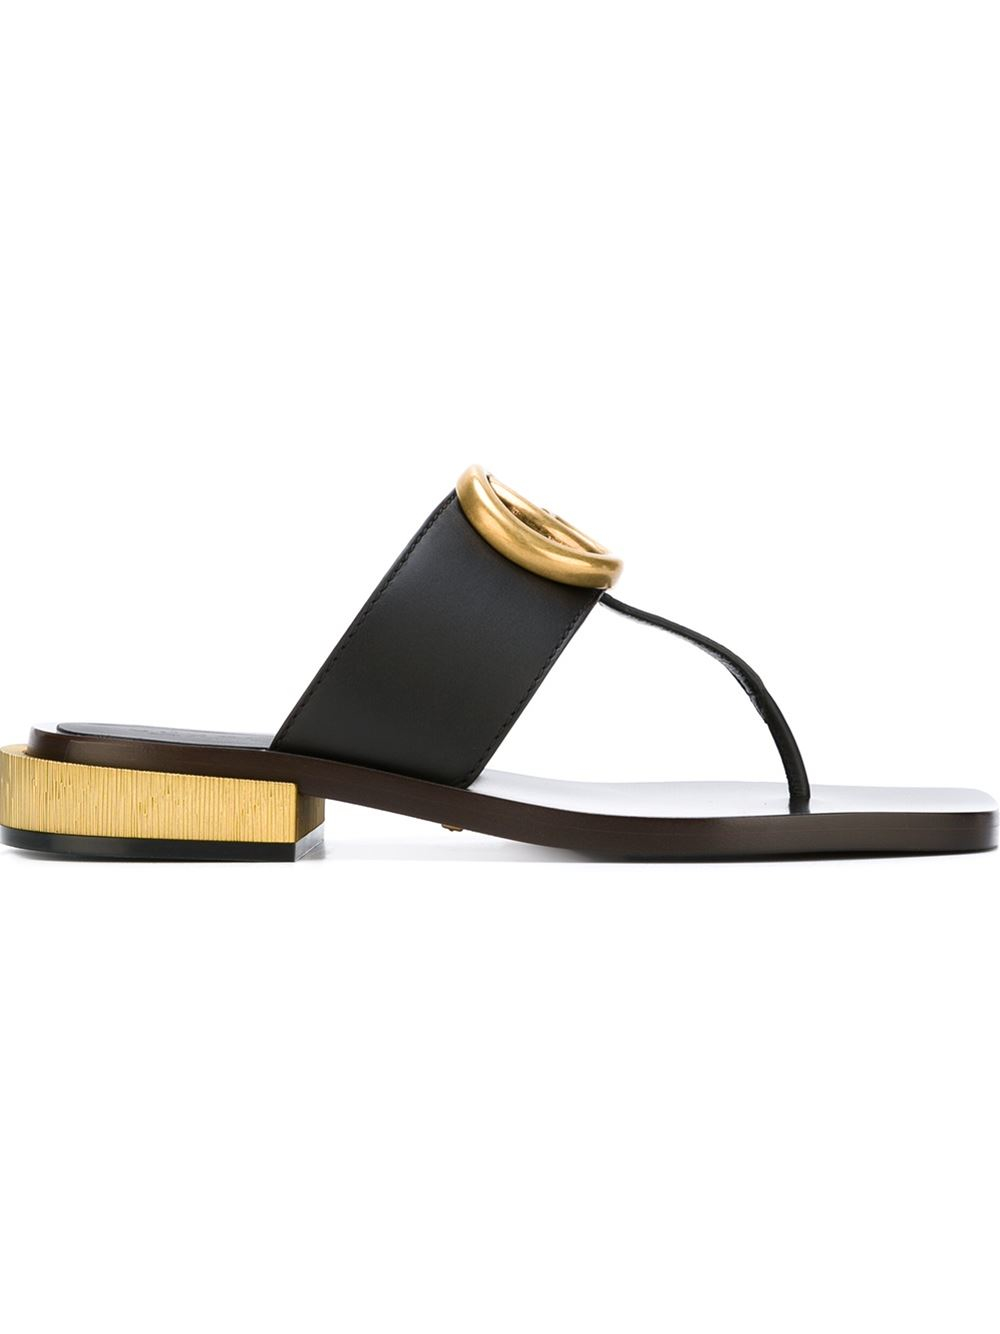 mELycGkYWd Leather Double G sandals